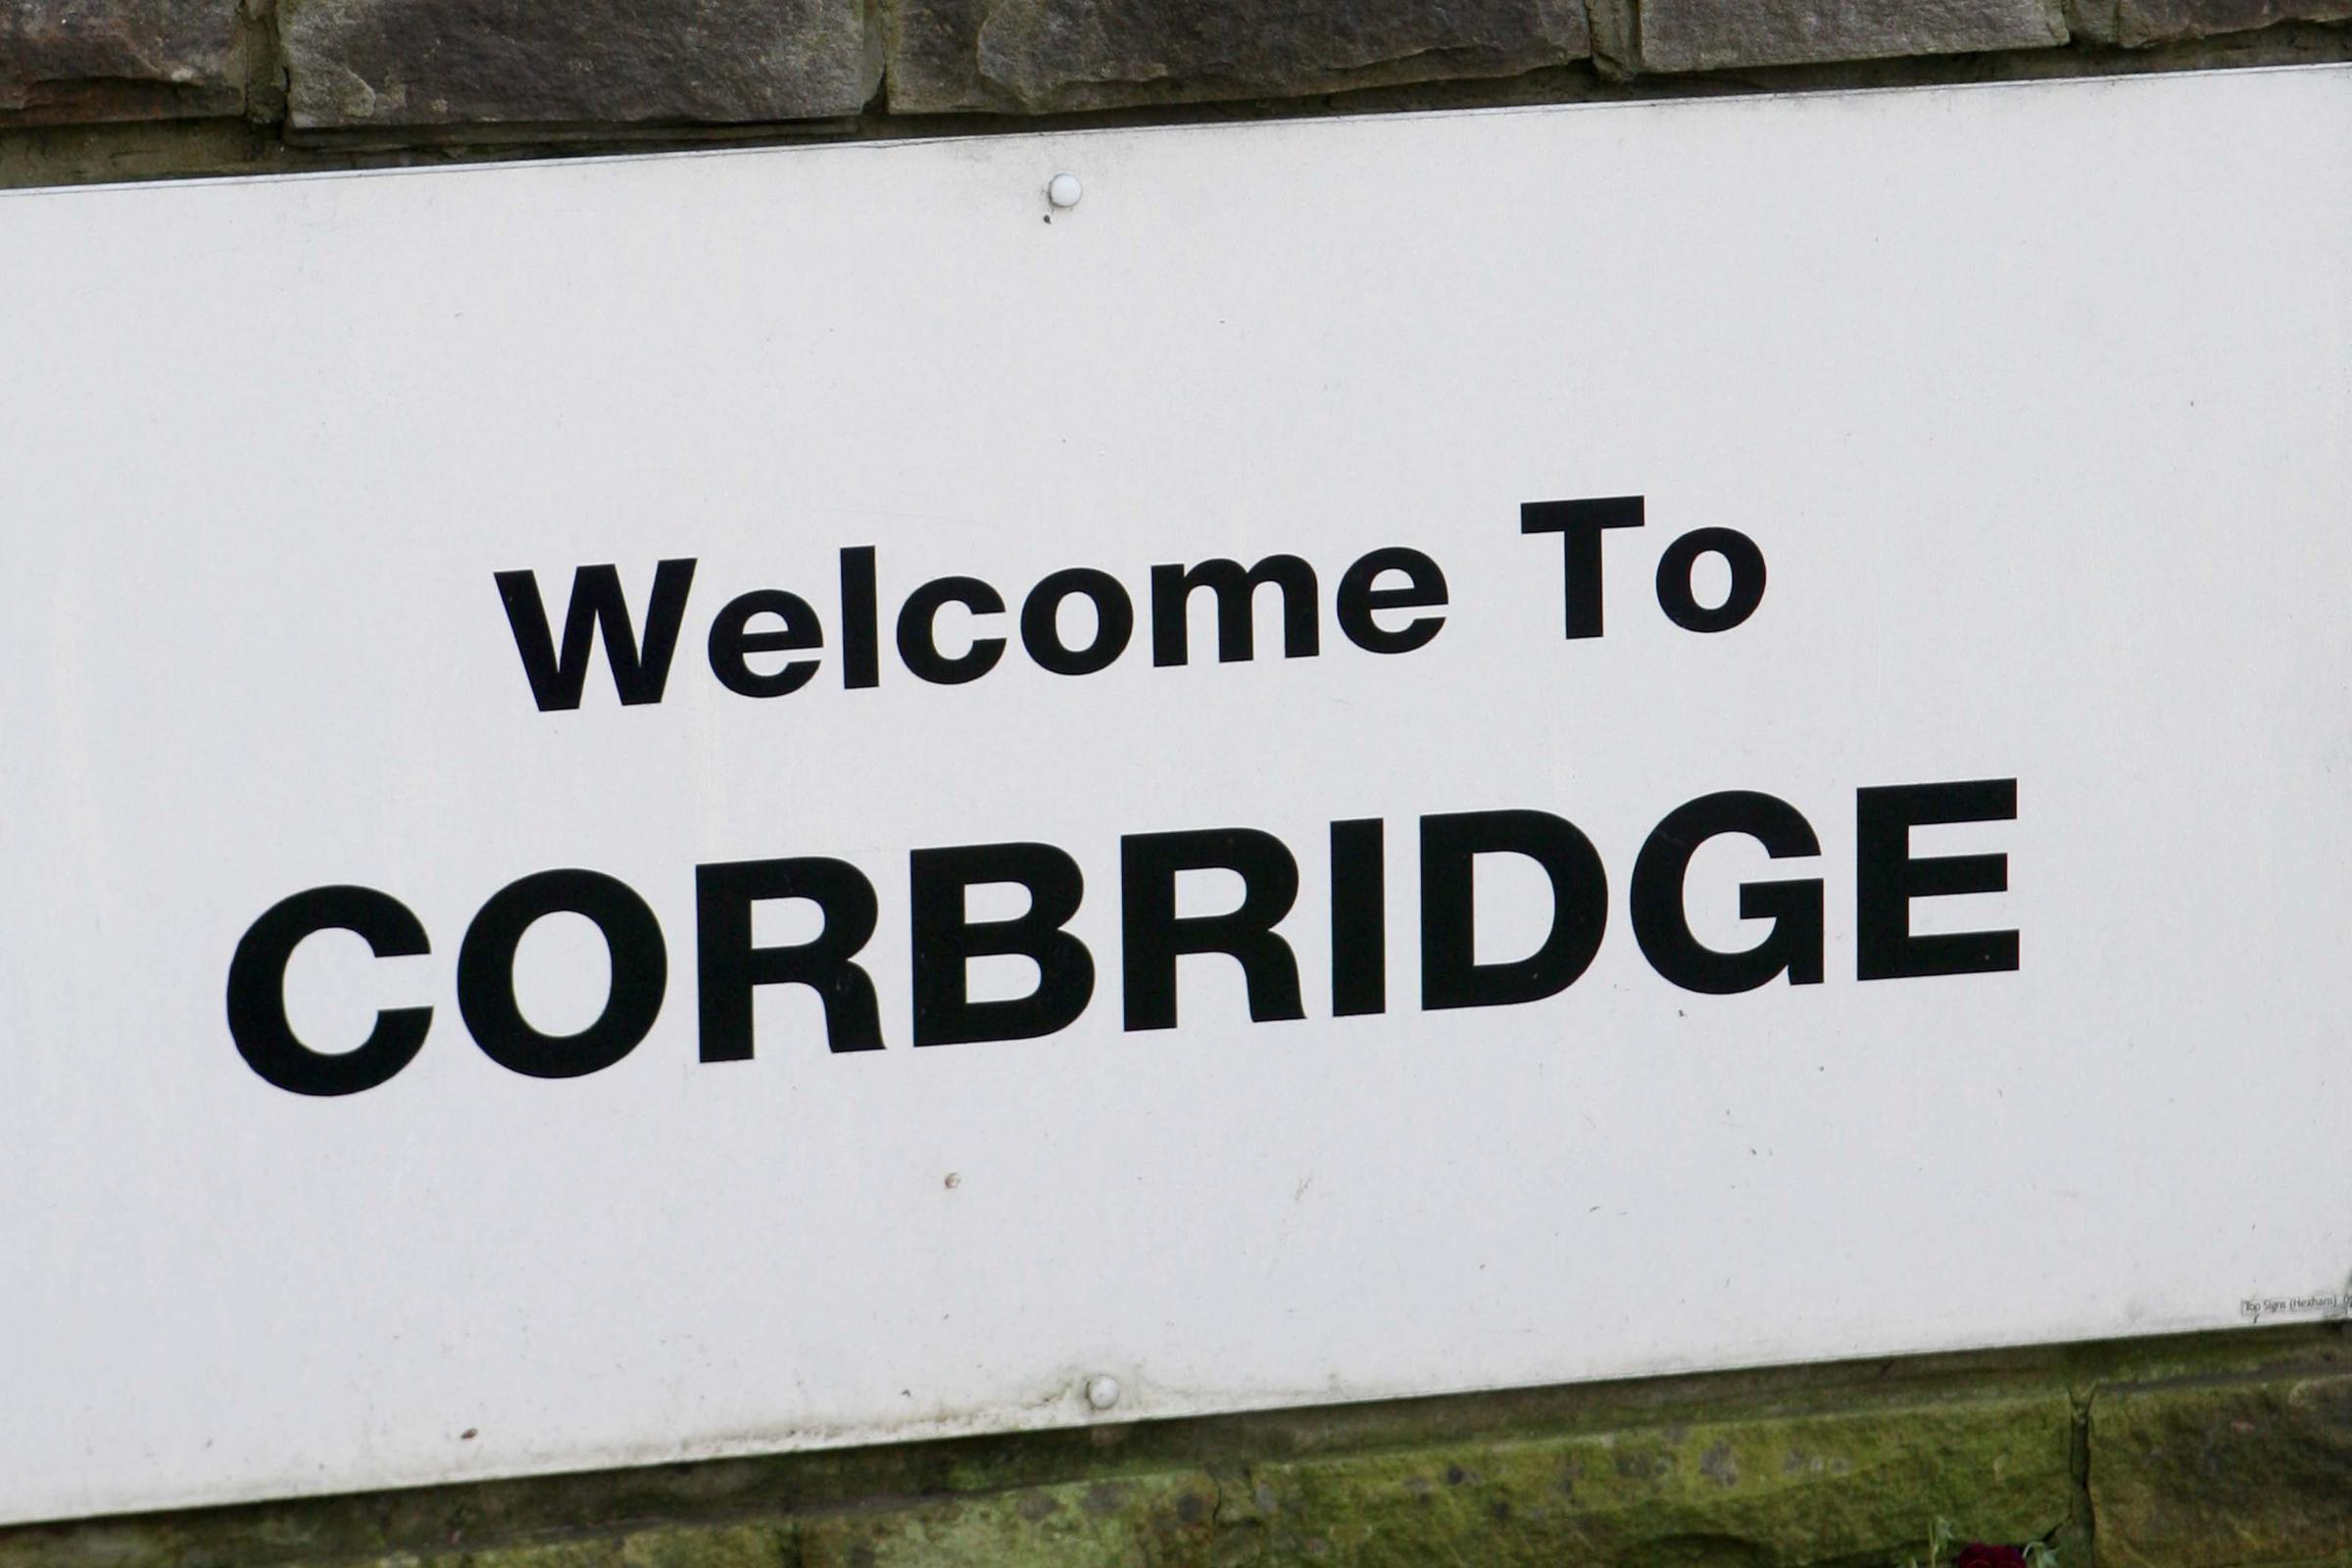 Community groups in Corbridge have opened discussions over taking over the village's tourist information centre